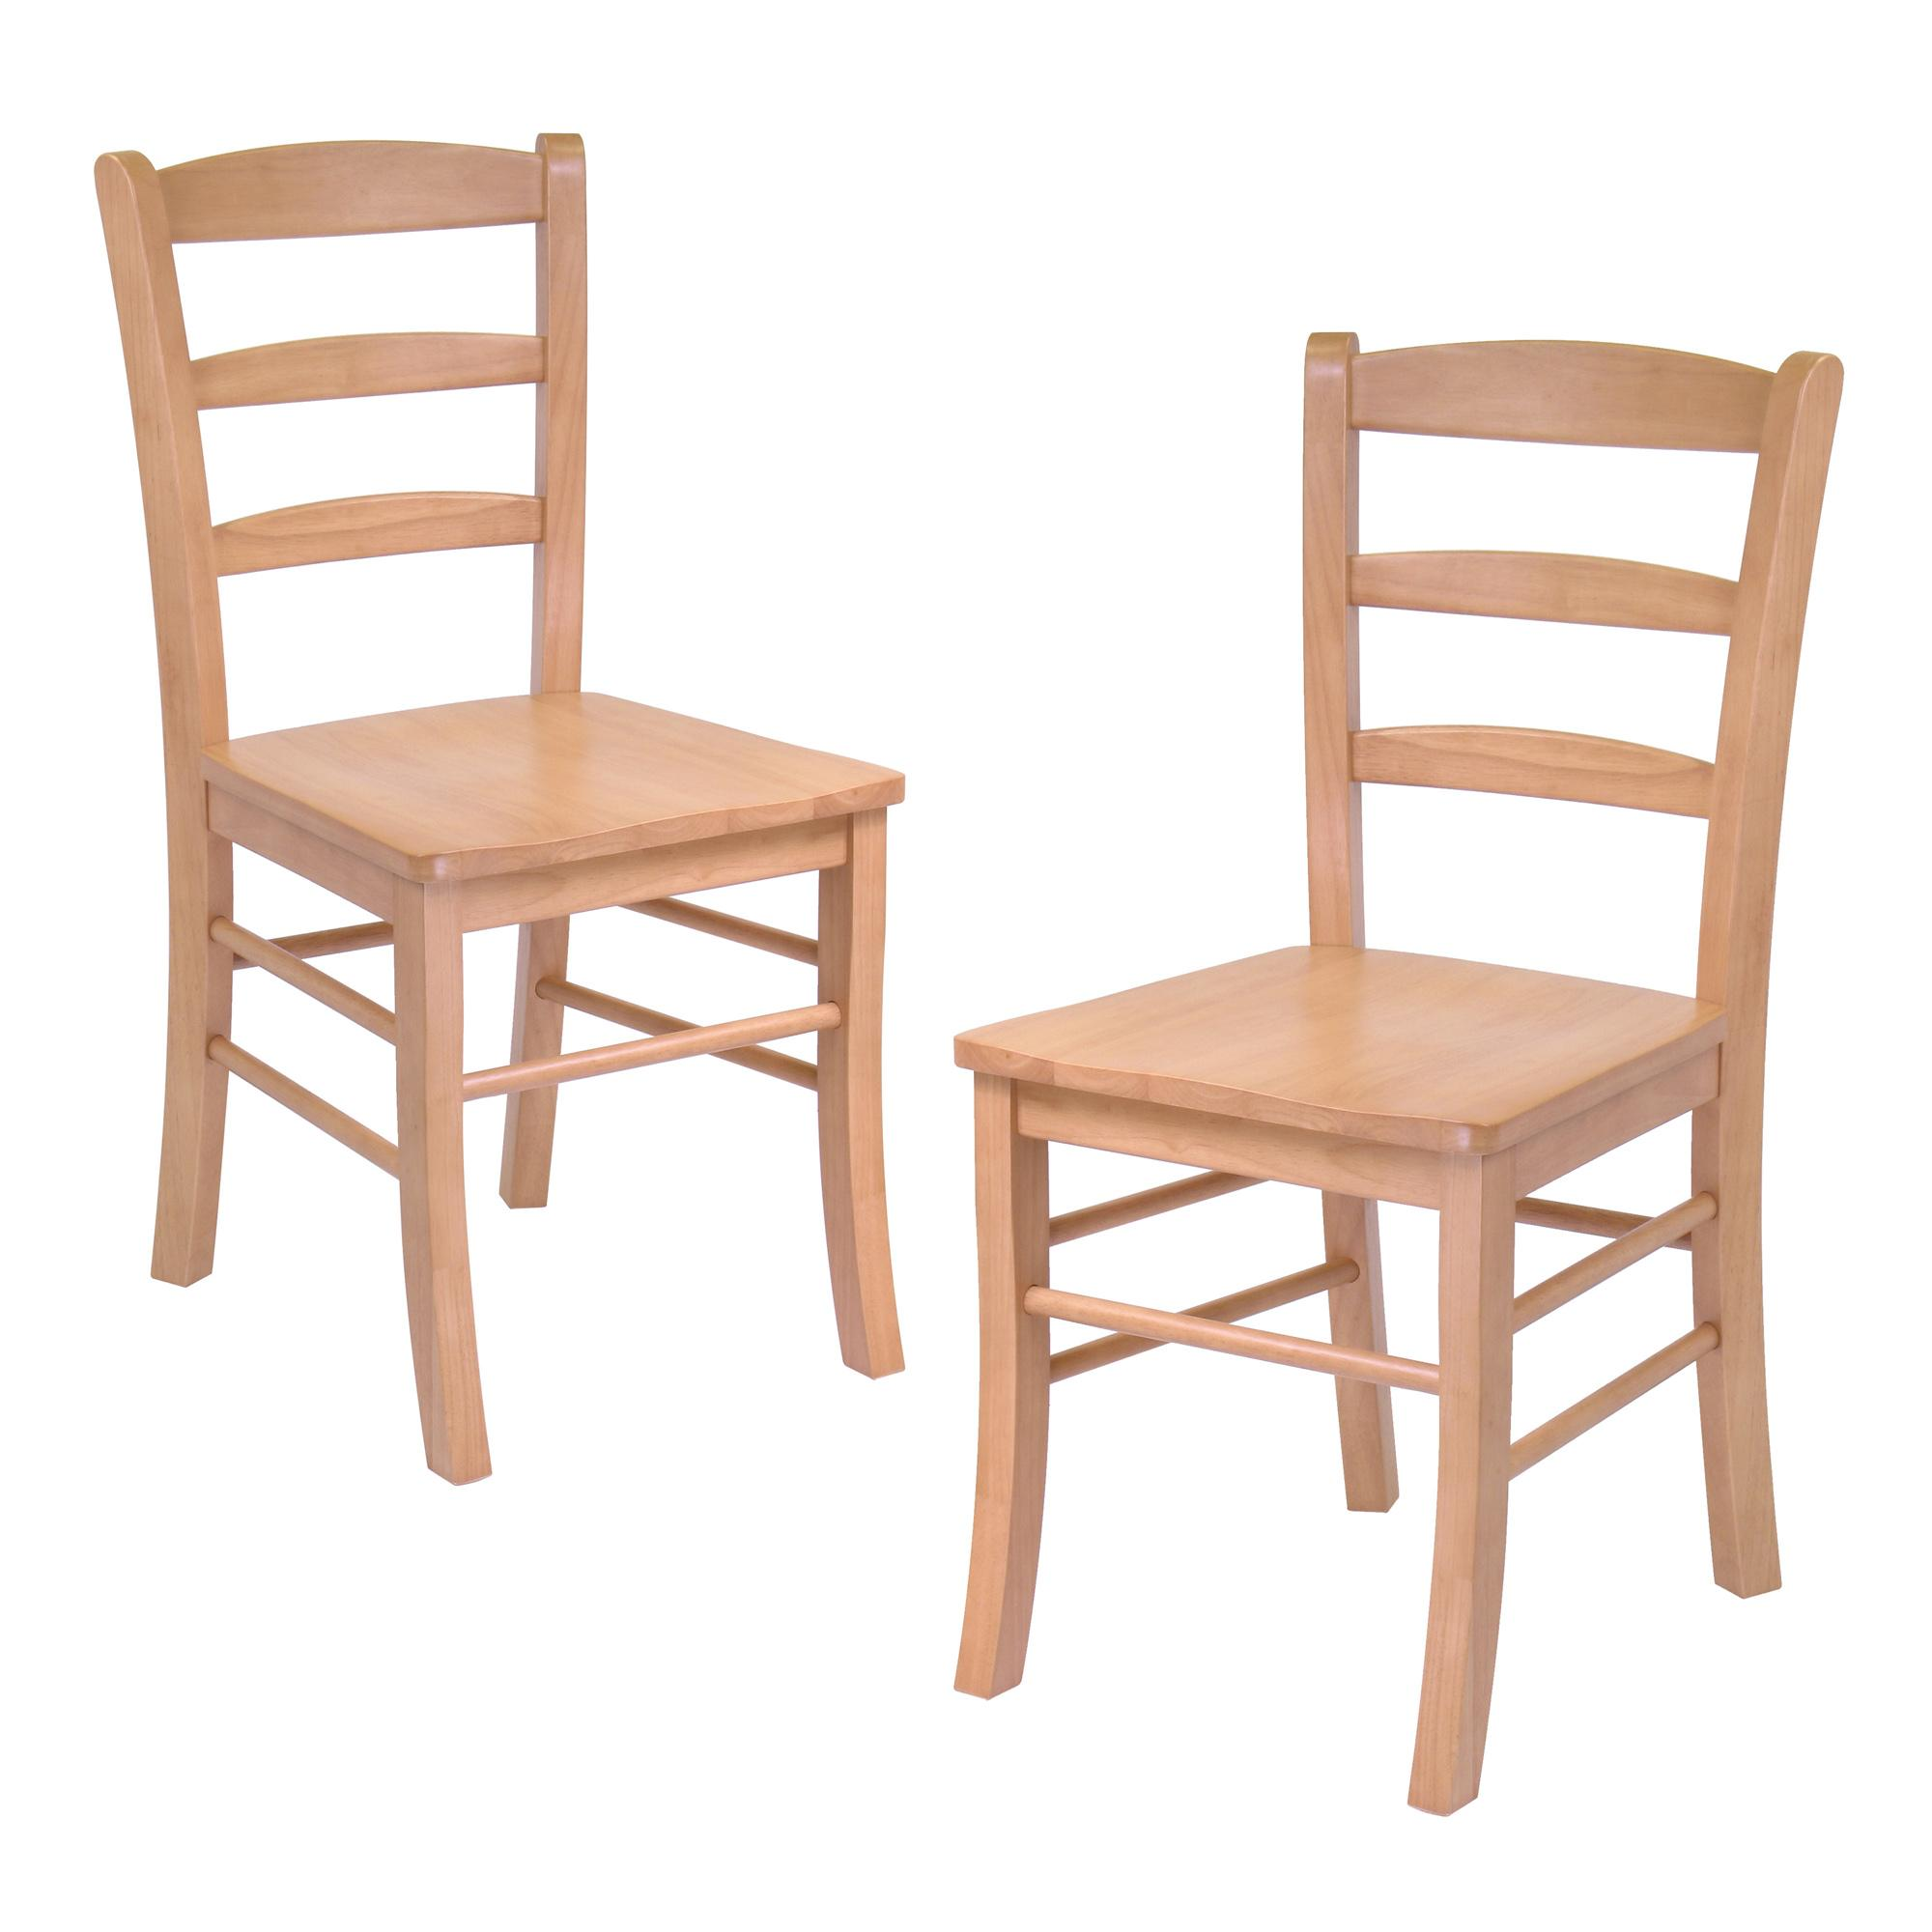 Wood Dining Chair Hannah Dining Wood Side Chairs In Light Oak Finish Set Of